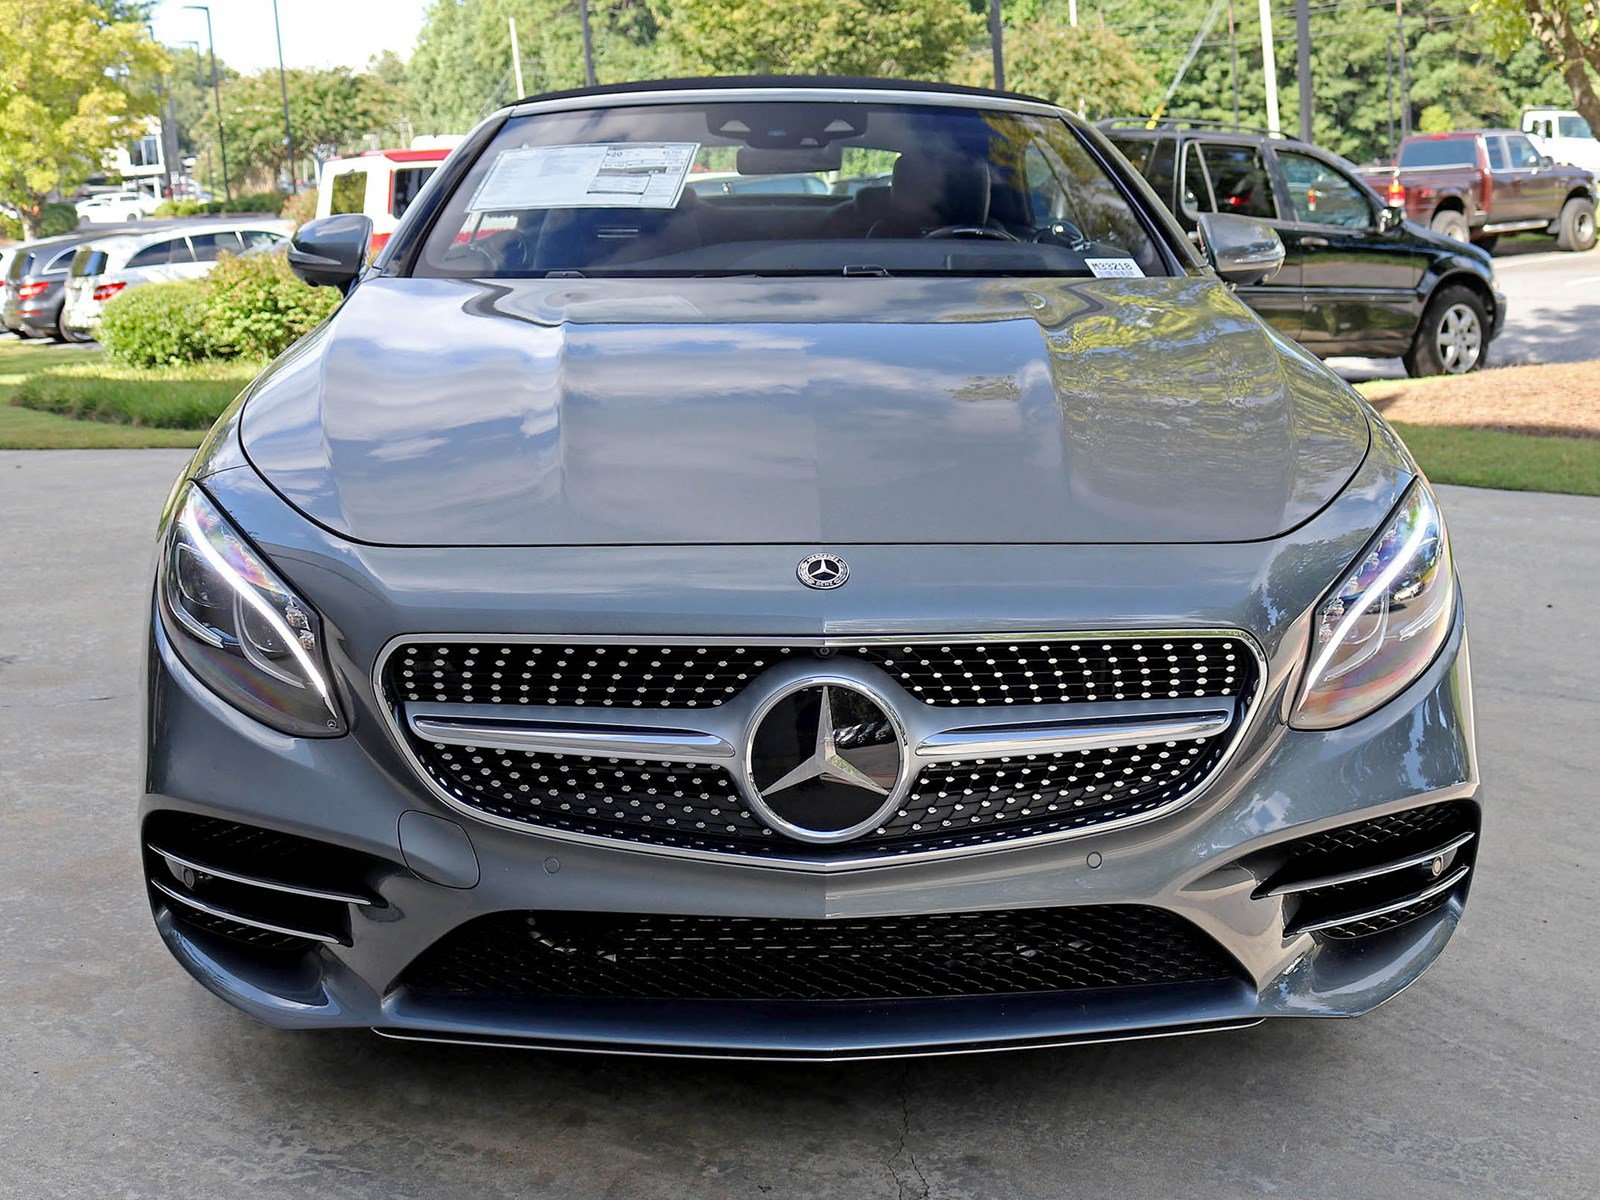 New 2018 Mercedes Benz S Class S 560 Cabriolet CABRIOLET in Atlanta